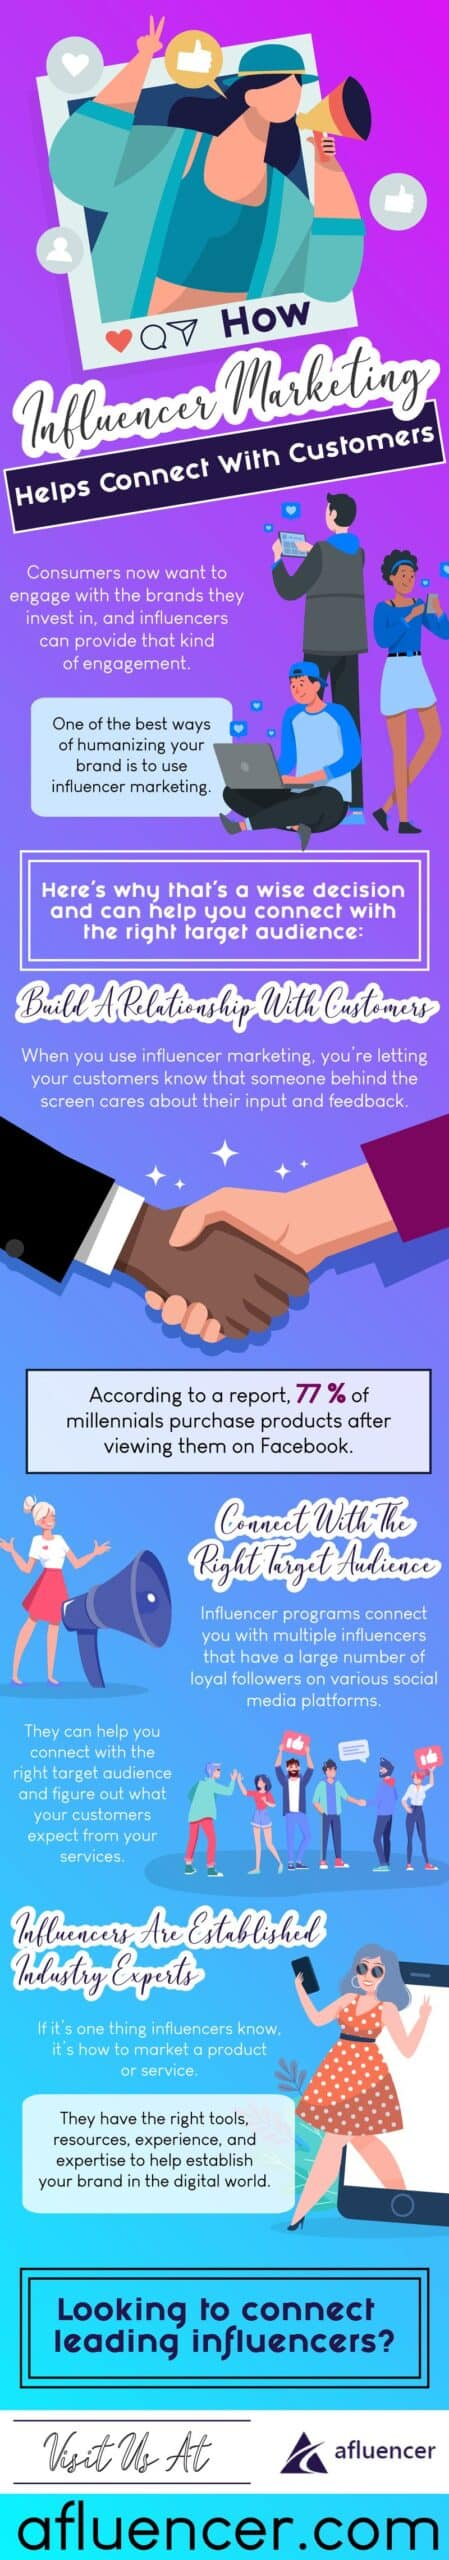 How Influencer Marketing Helps Connect With Customers | Infographic